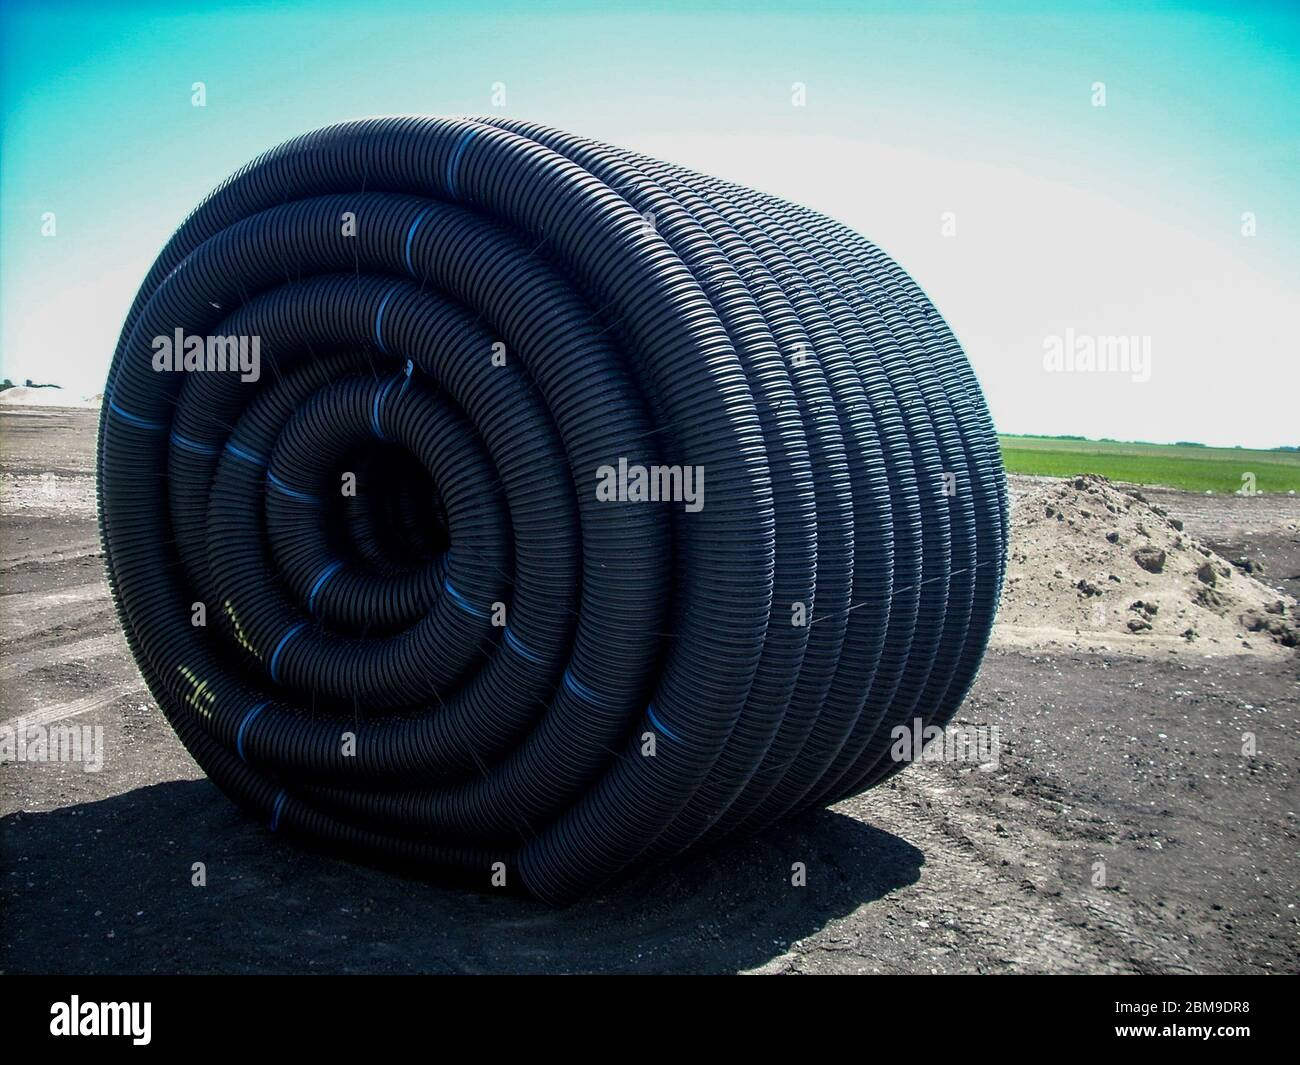 Spool of HDPE drainage tile sitting in agricultural field Stock Photo